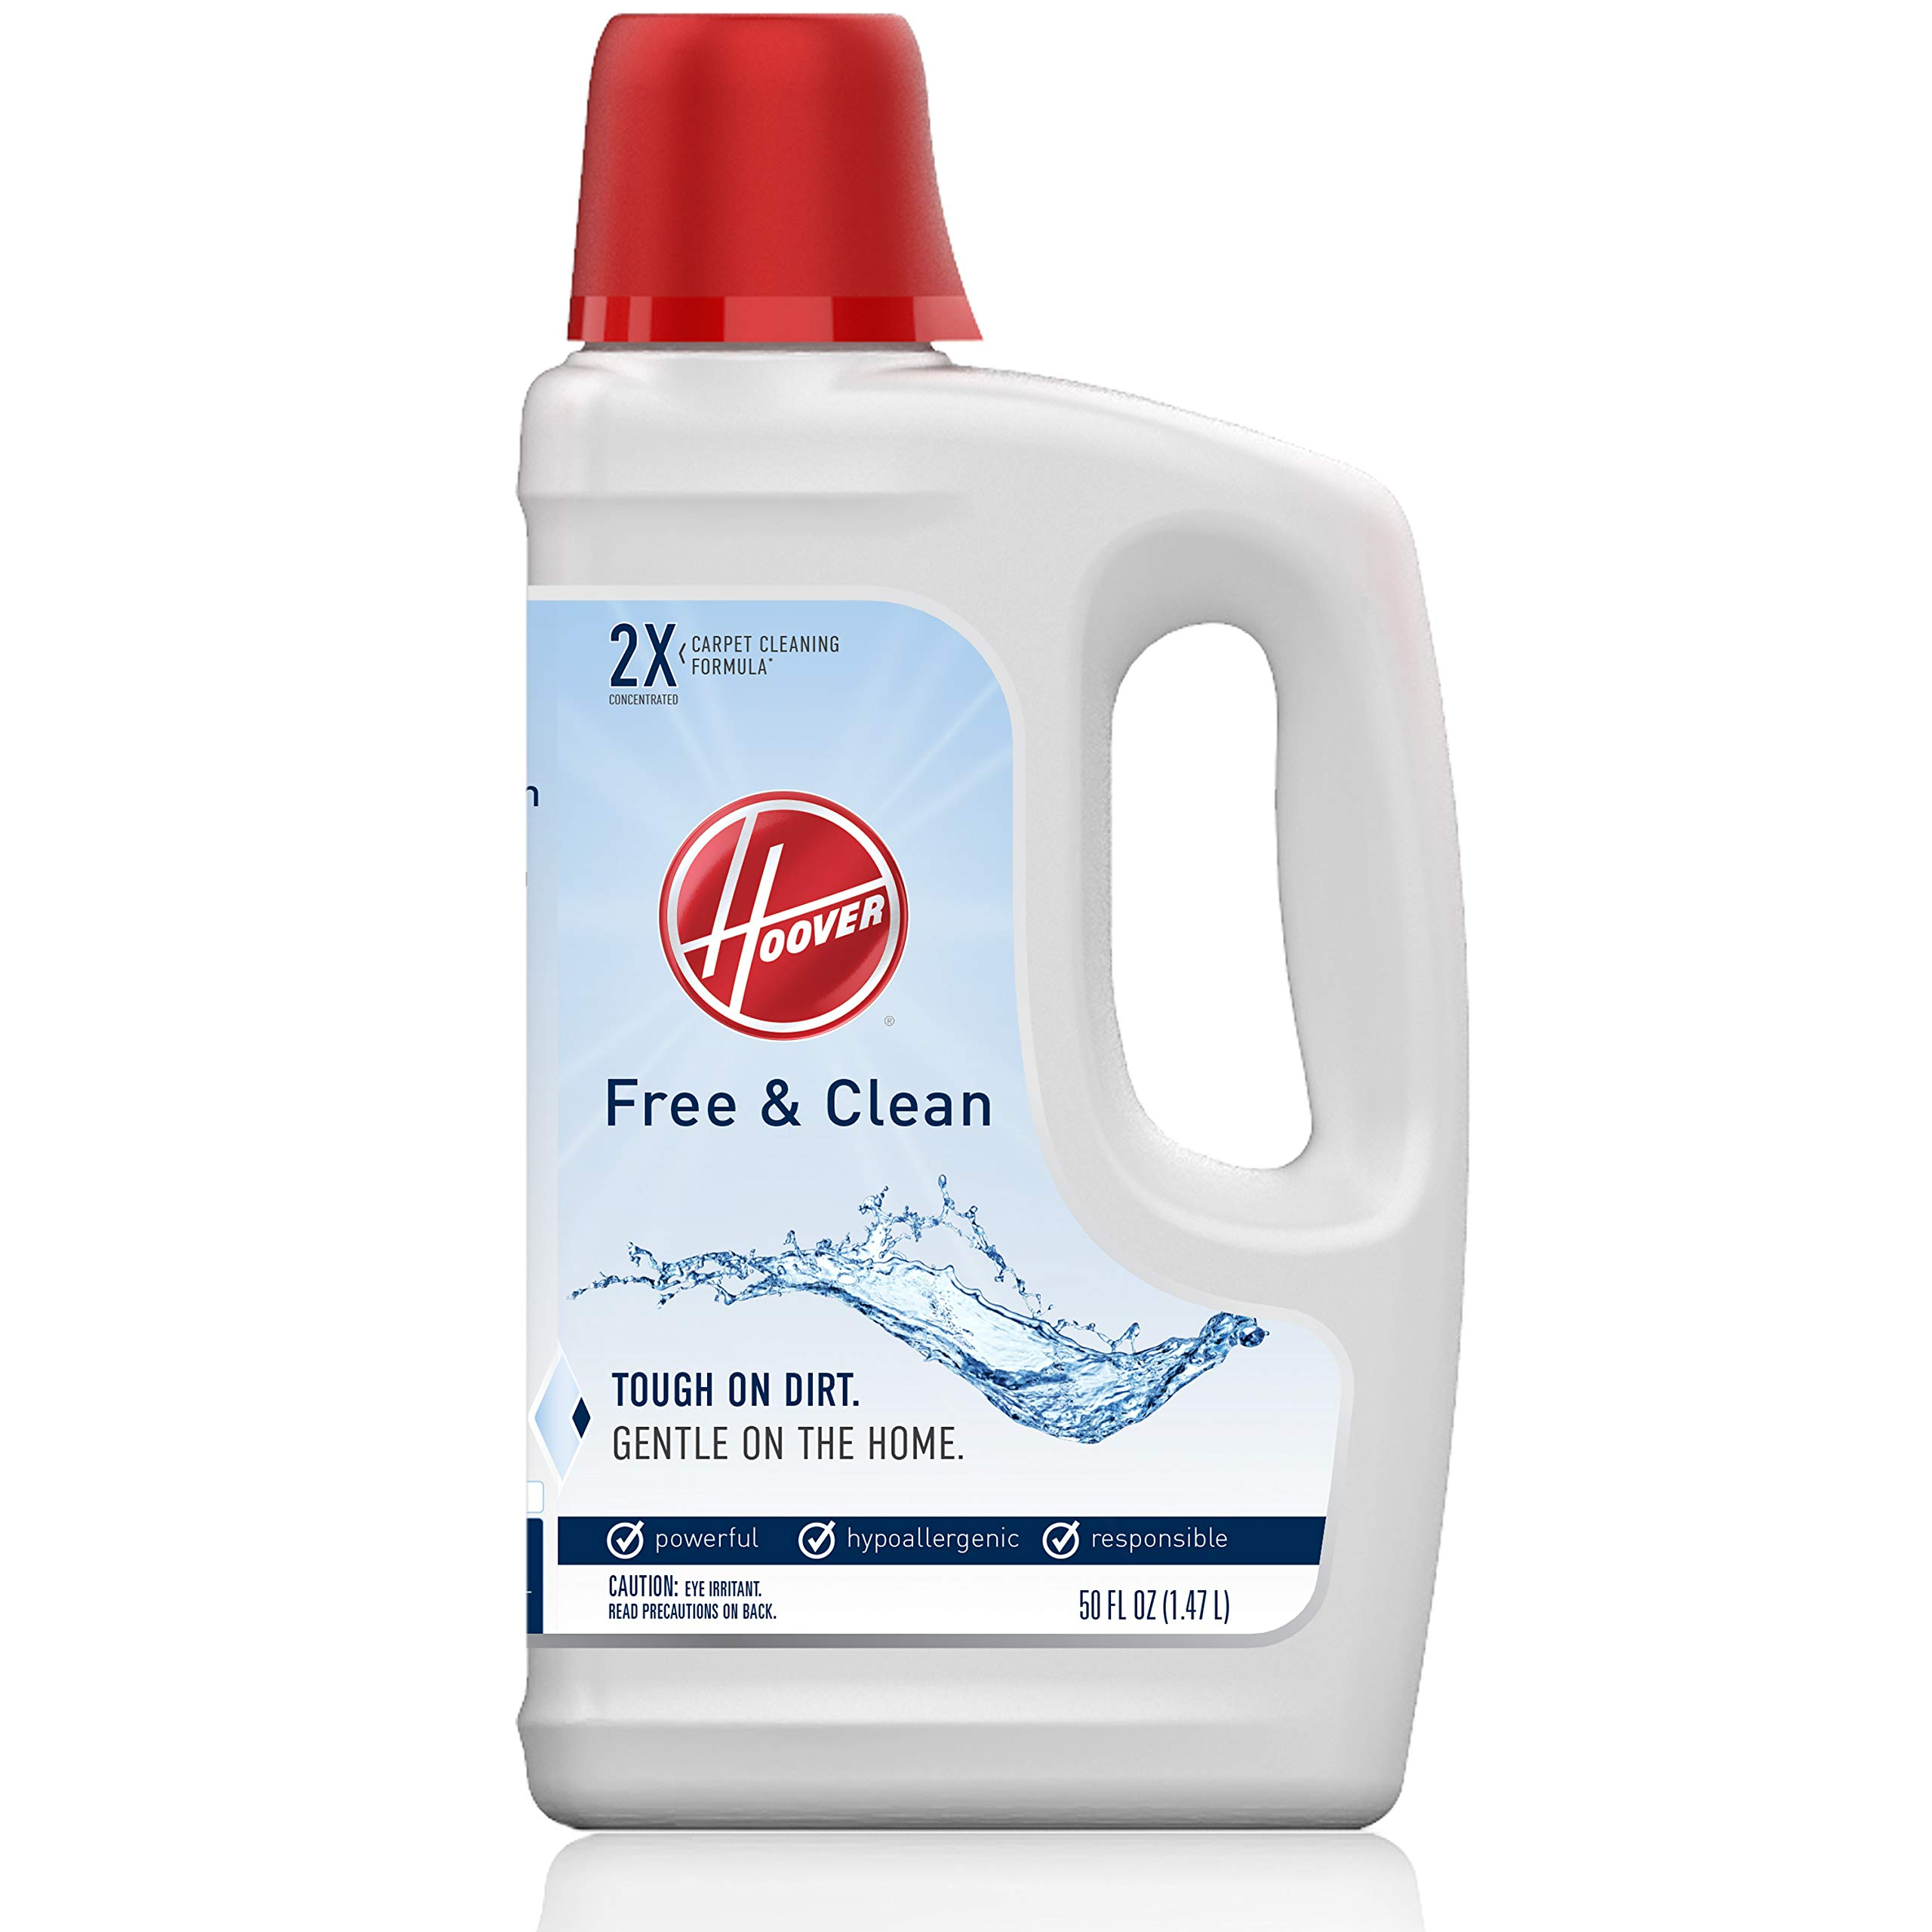 Hoover Free & Clean Deep Cleaning Carpet Shampoo, Concentrated Machine Cleaner Solution, 50oz Hypoallergenic Formula, AH30952, White